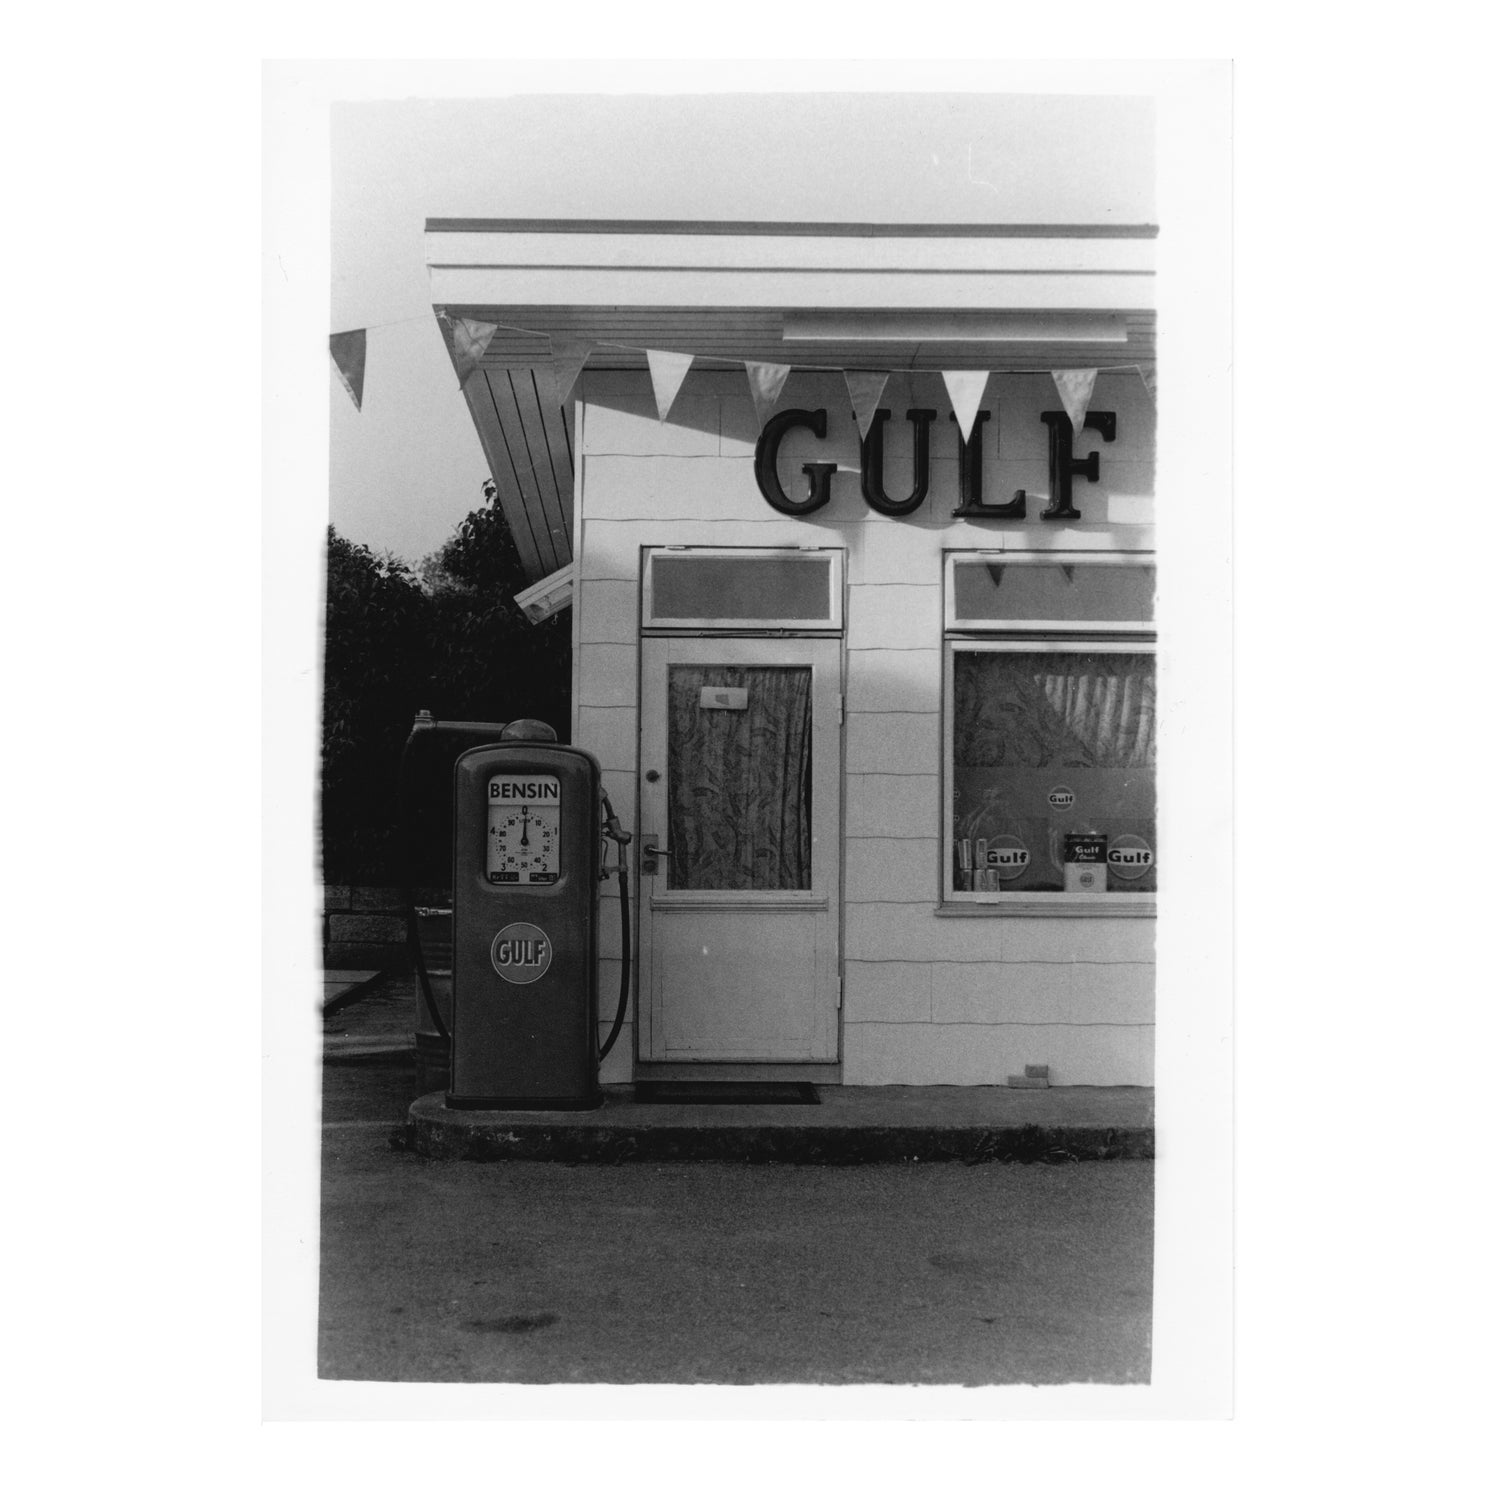 Image of Gulf station